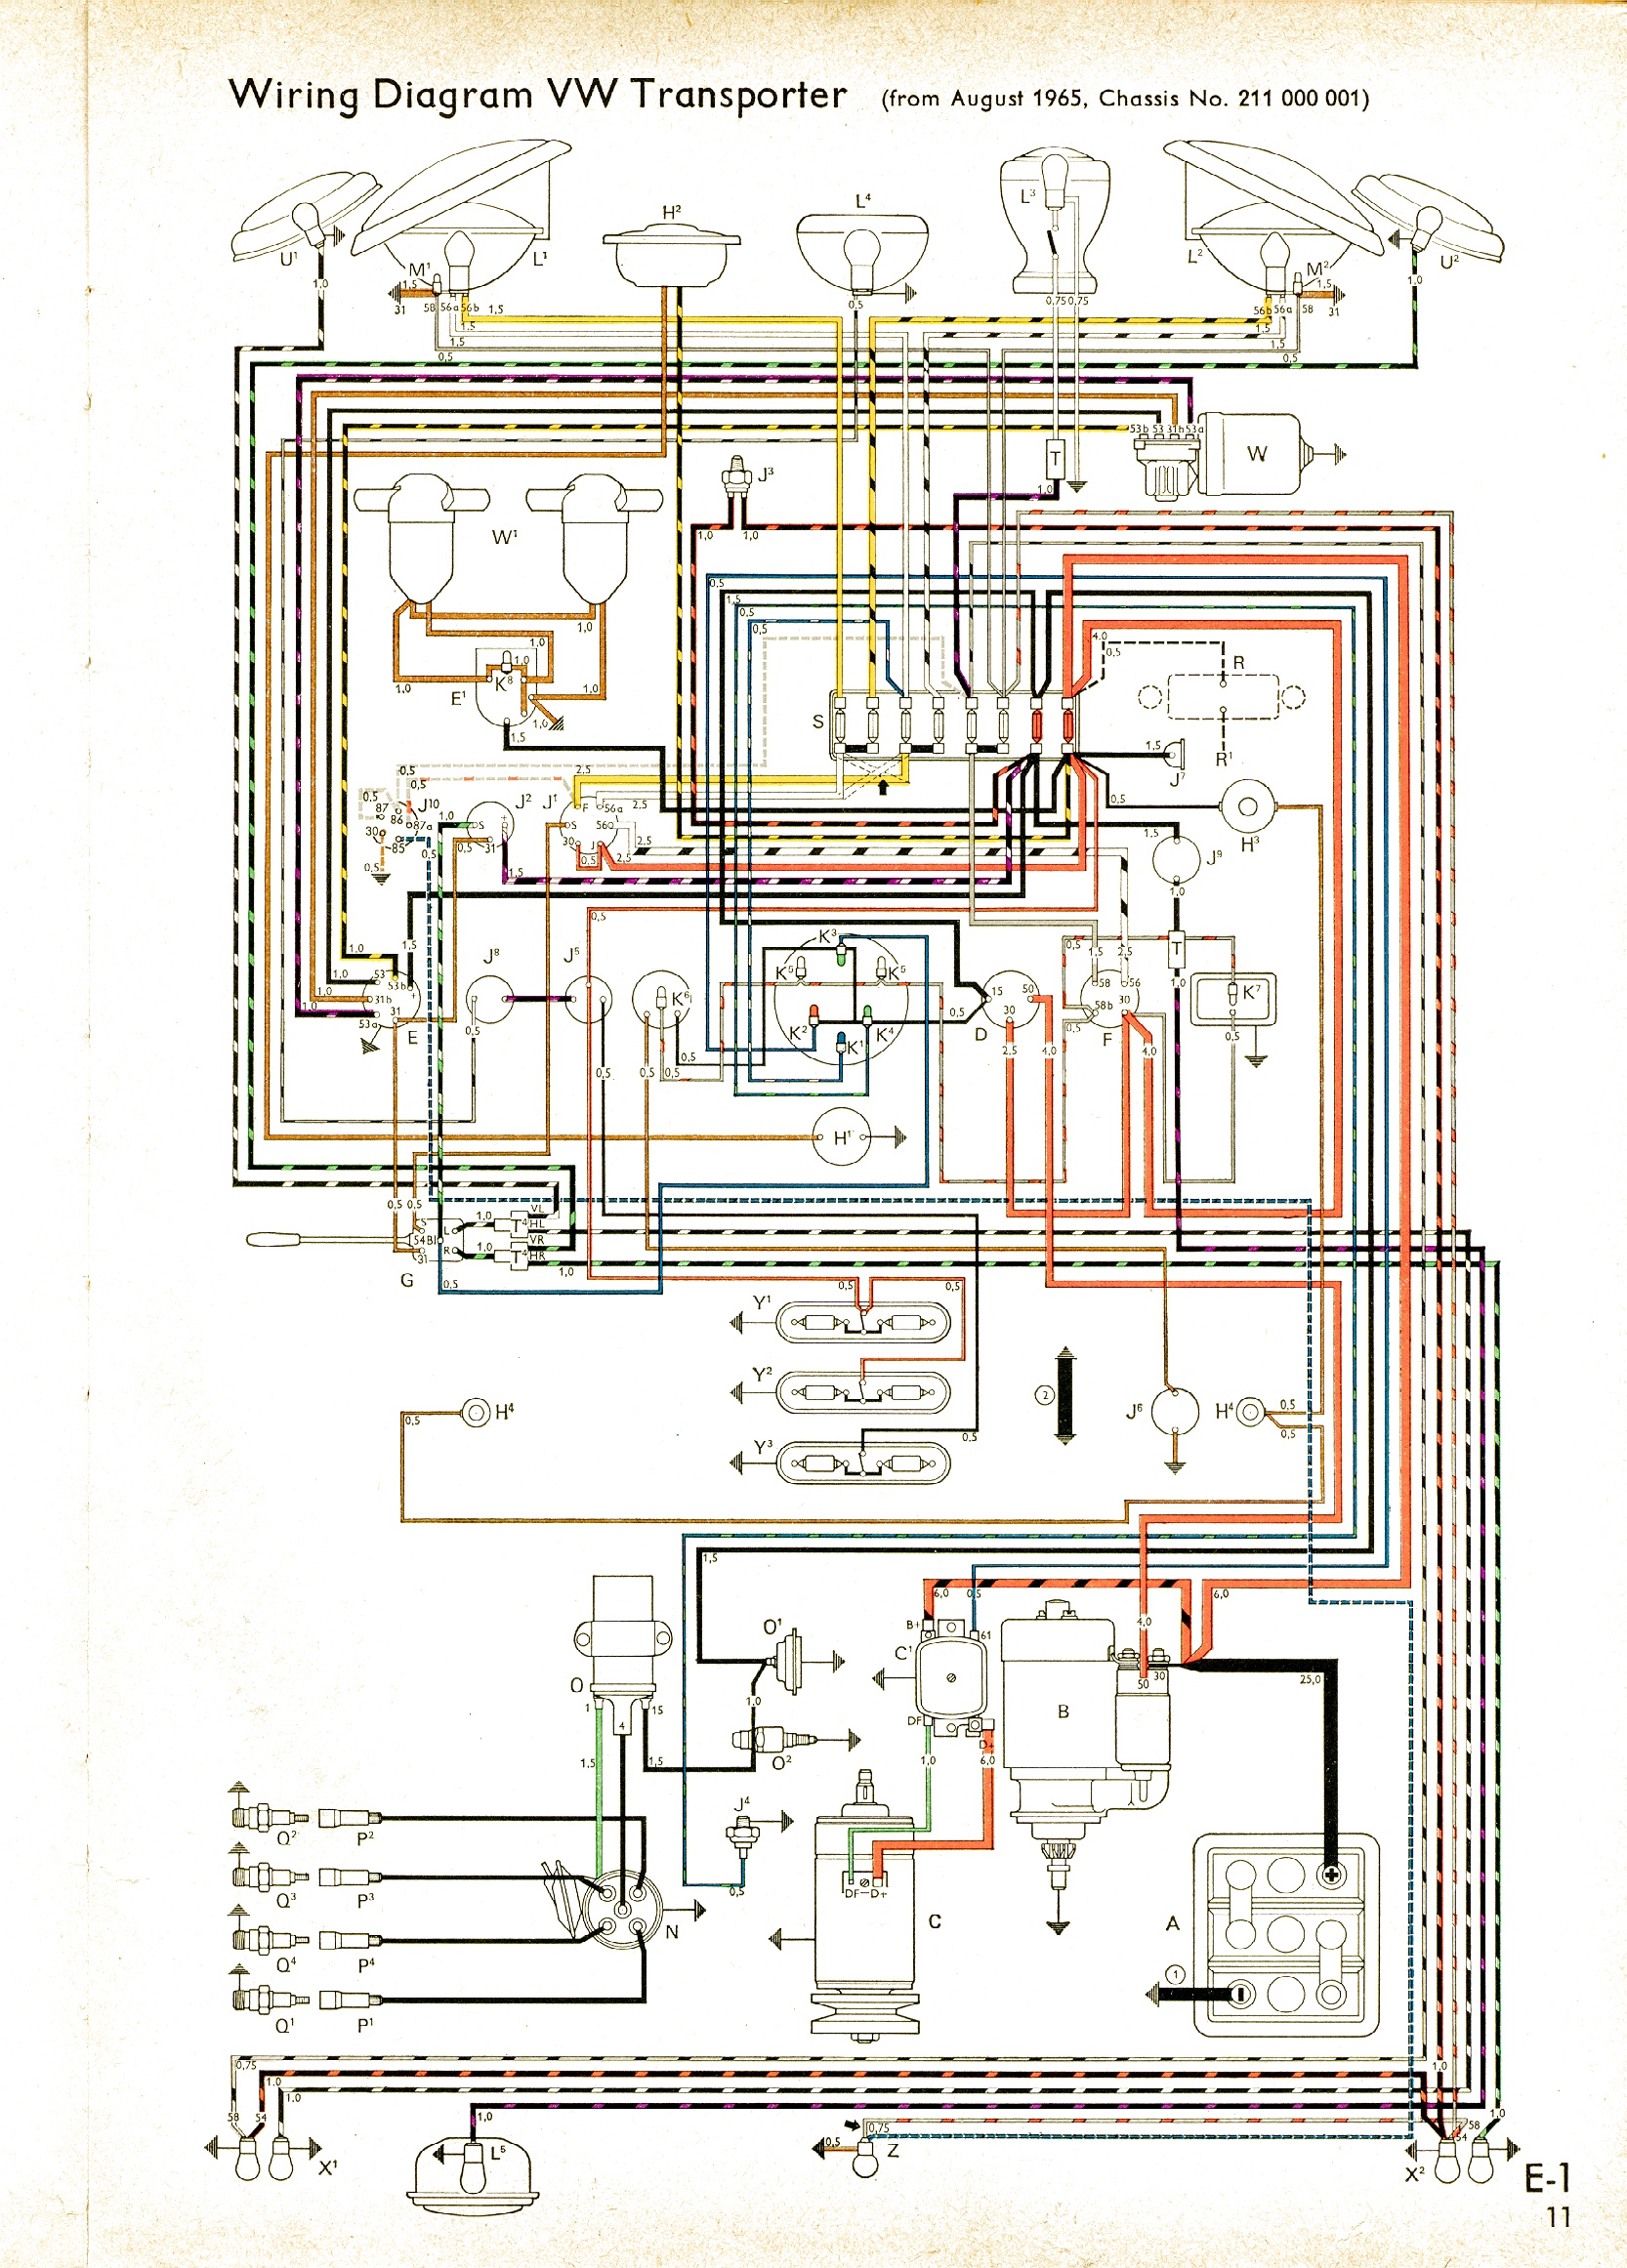 vw volkswagen diagram wirings wiring diagram name 1973 VW Wiring Diagram vintagebus com vw bus (and other) wiring diagrams vw cooling system diagram com vw